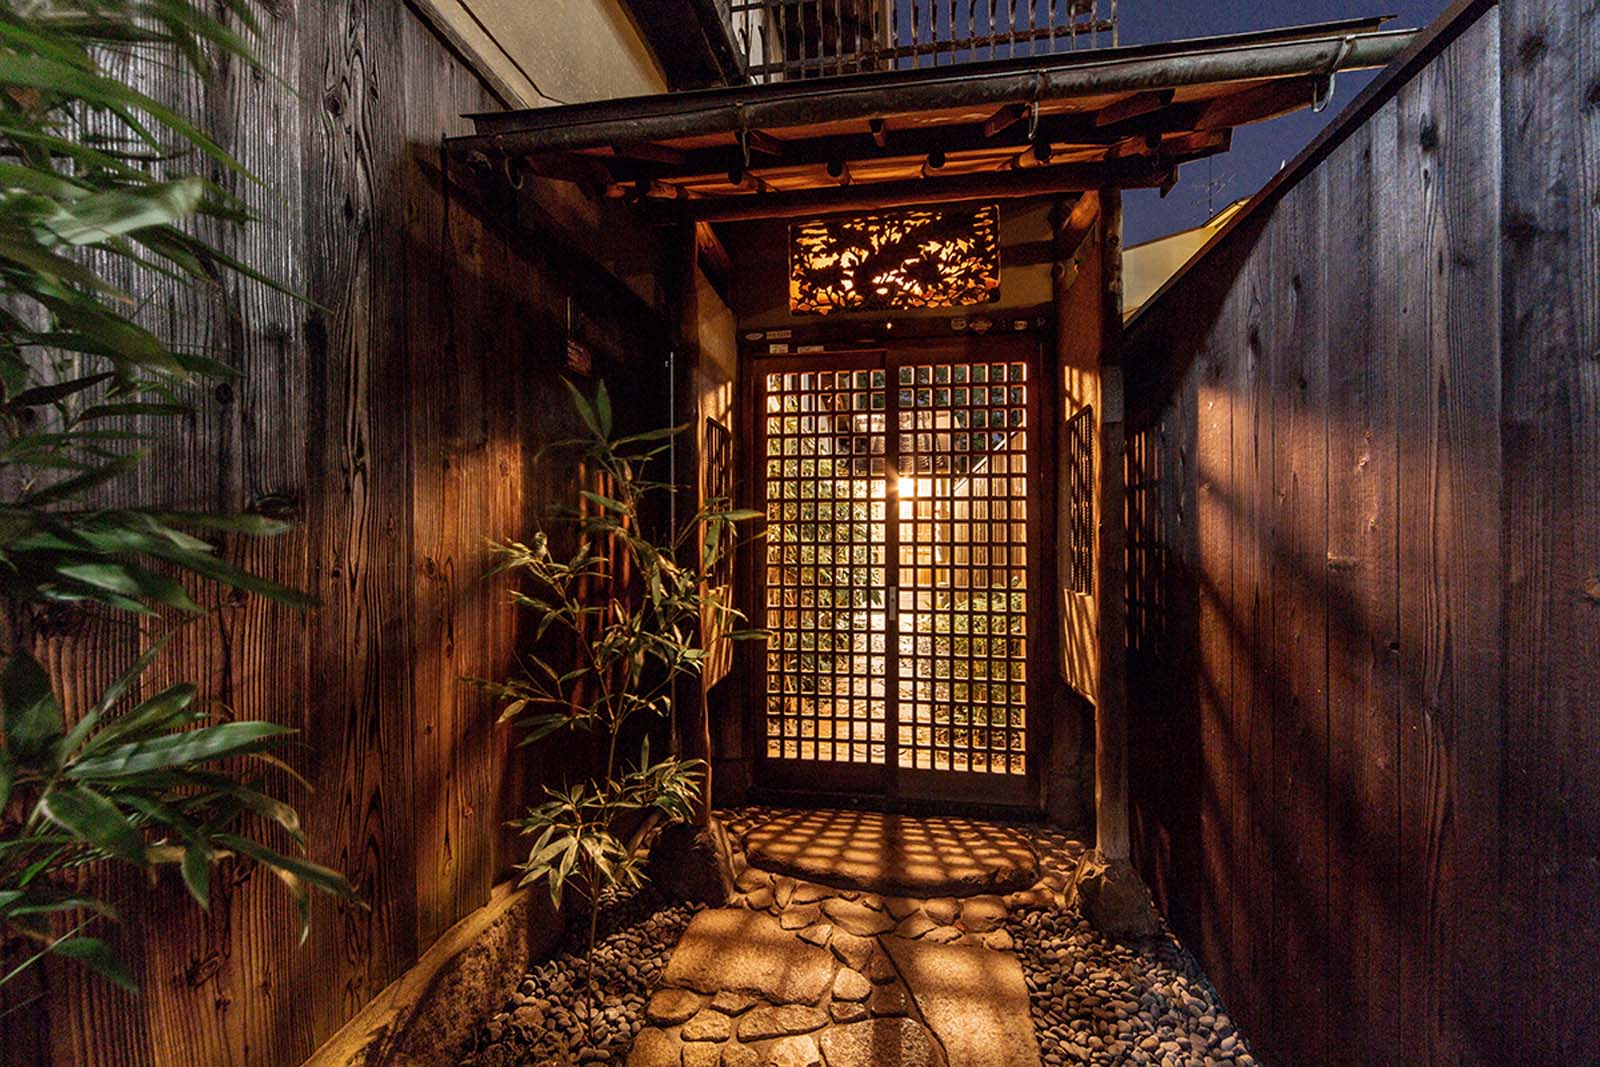 OUR PROPERTIES - We create unique accommodation in the heart of Japan's ancient capital.